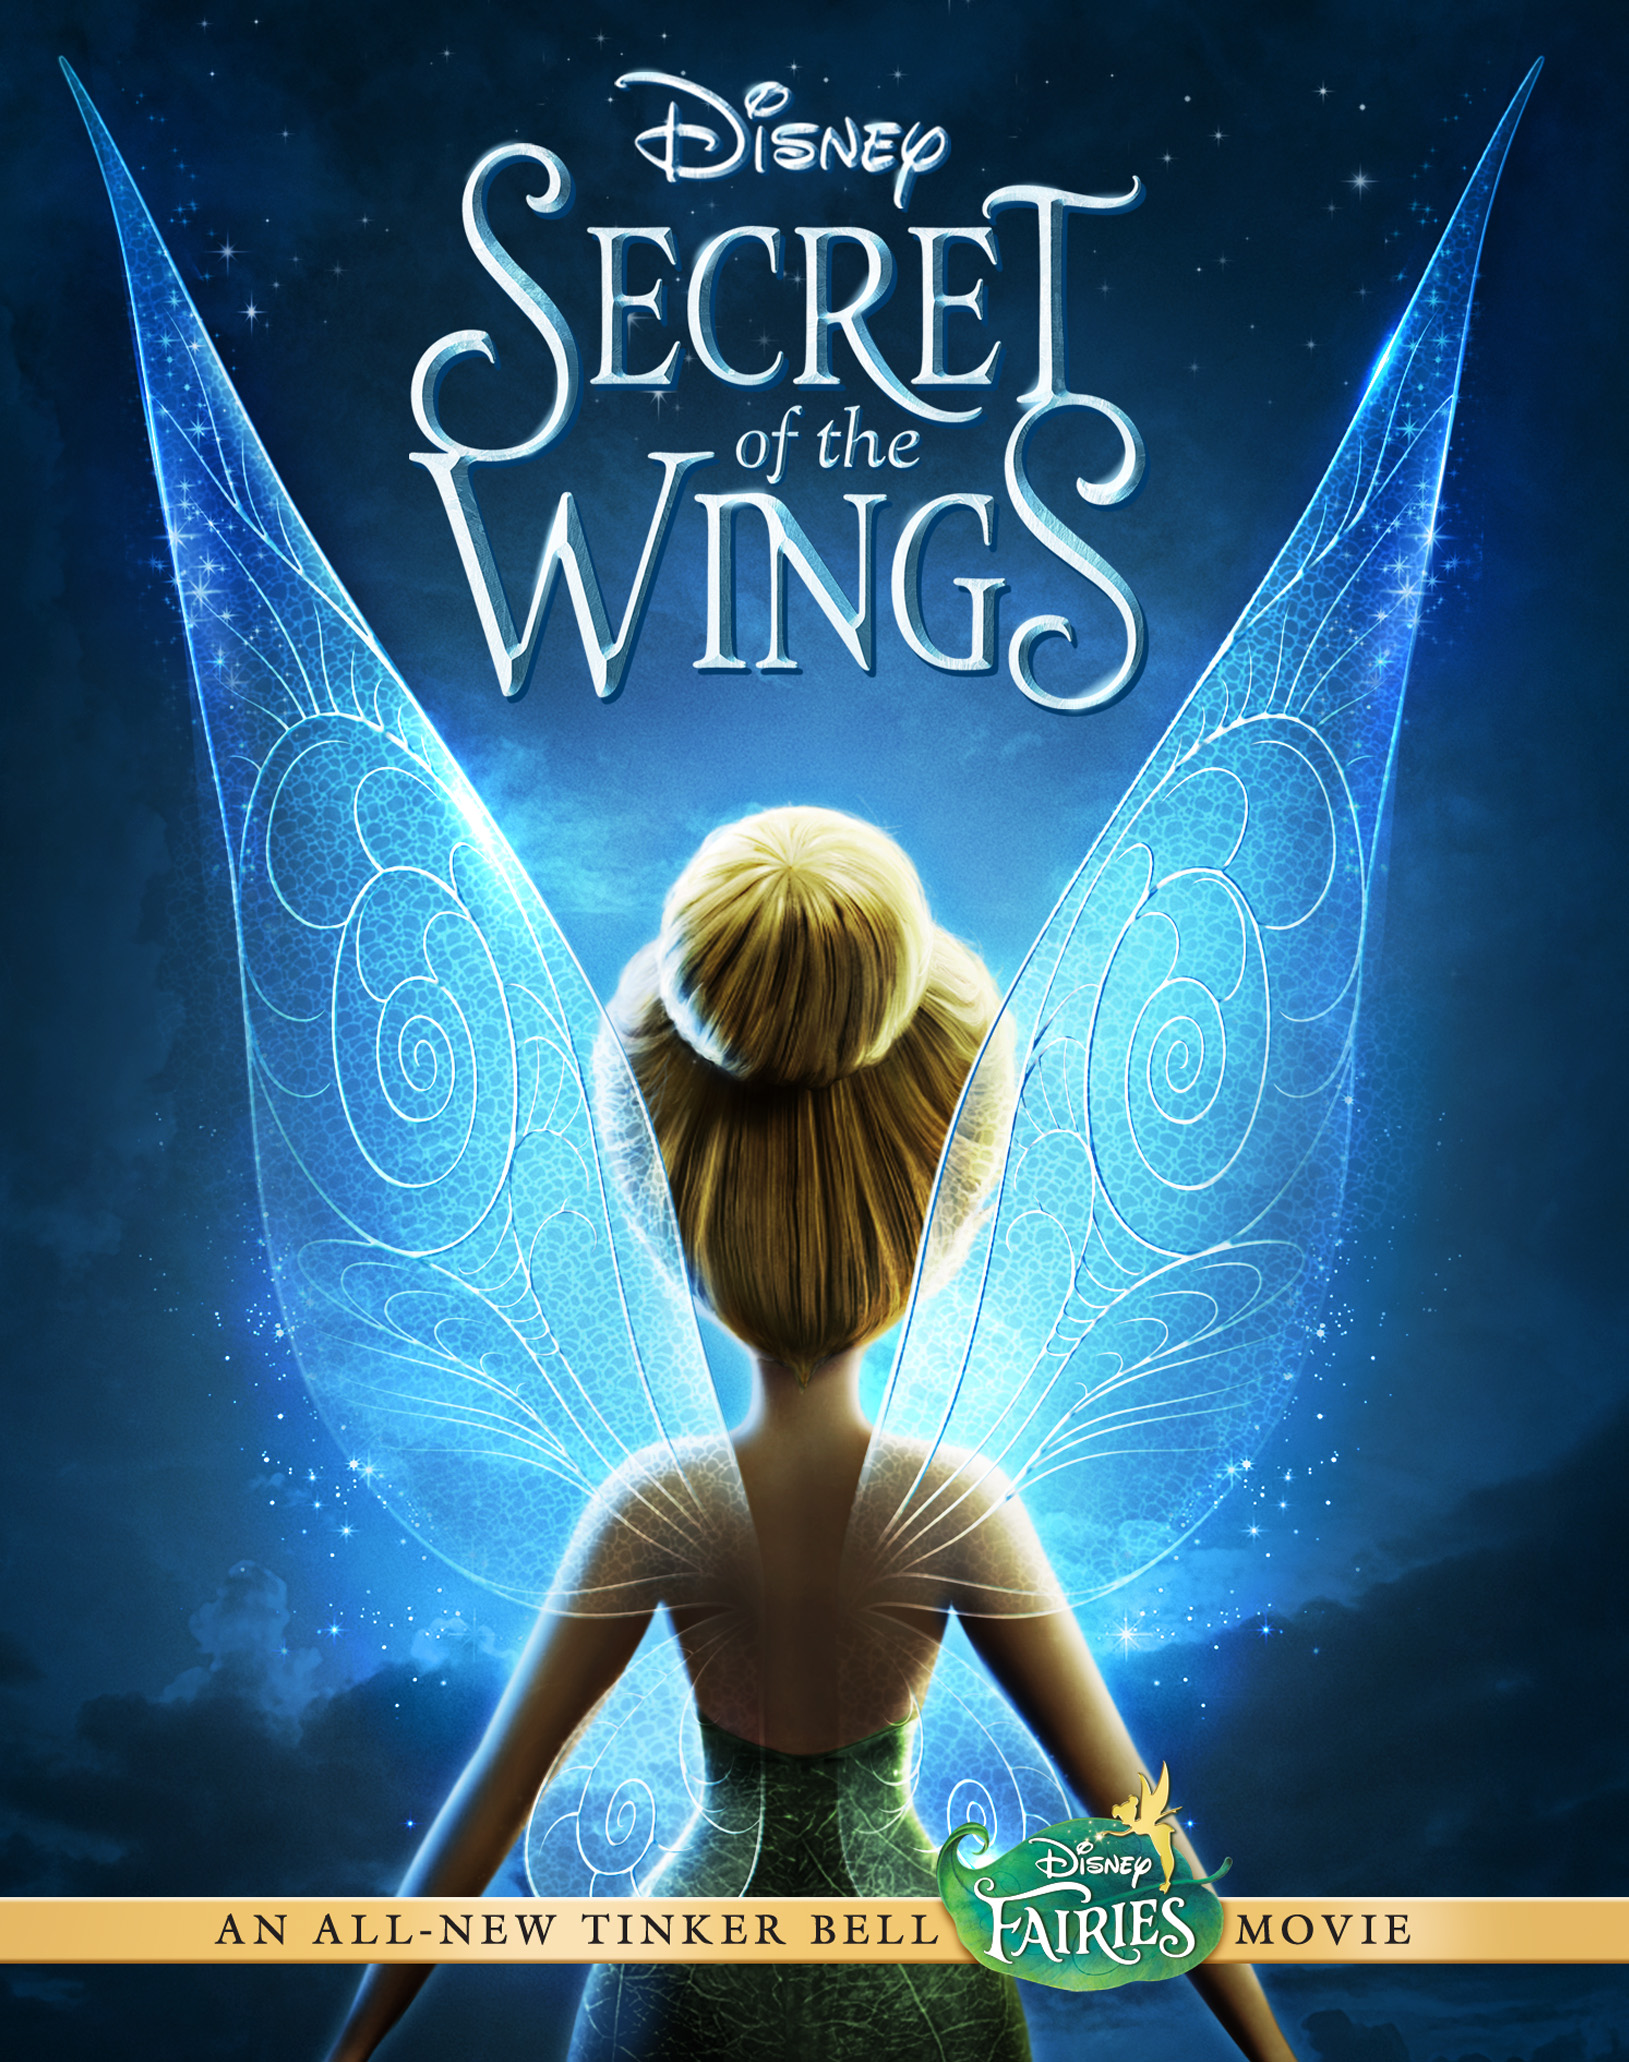 Tinkerbell secret of the wings soundtrack list